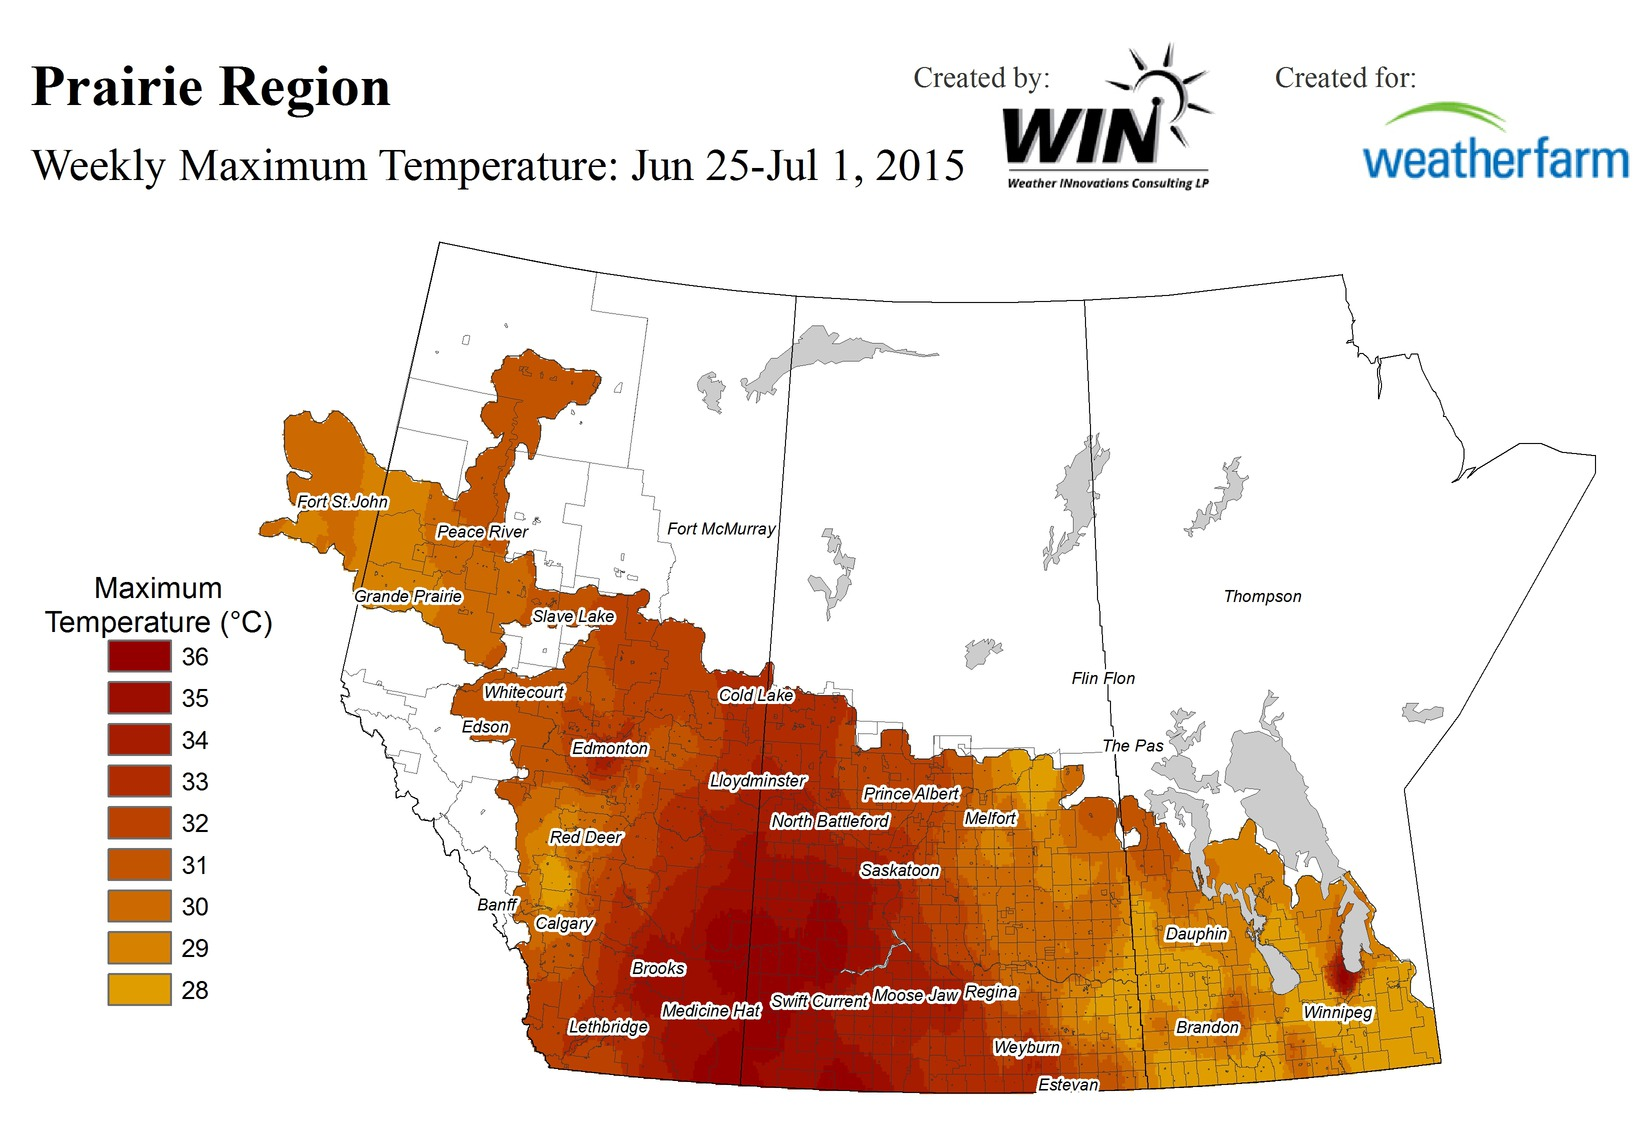 All parts of the Prairies had at least one day with a high of at least 28°C over the past week. Some areas were much hotter for days in a row.